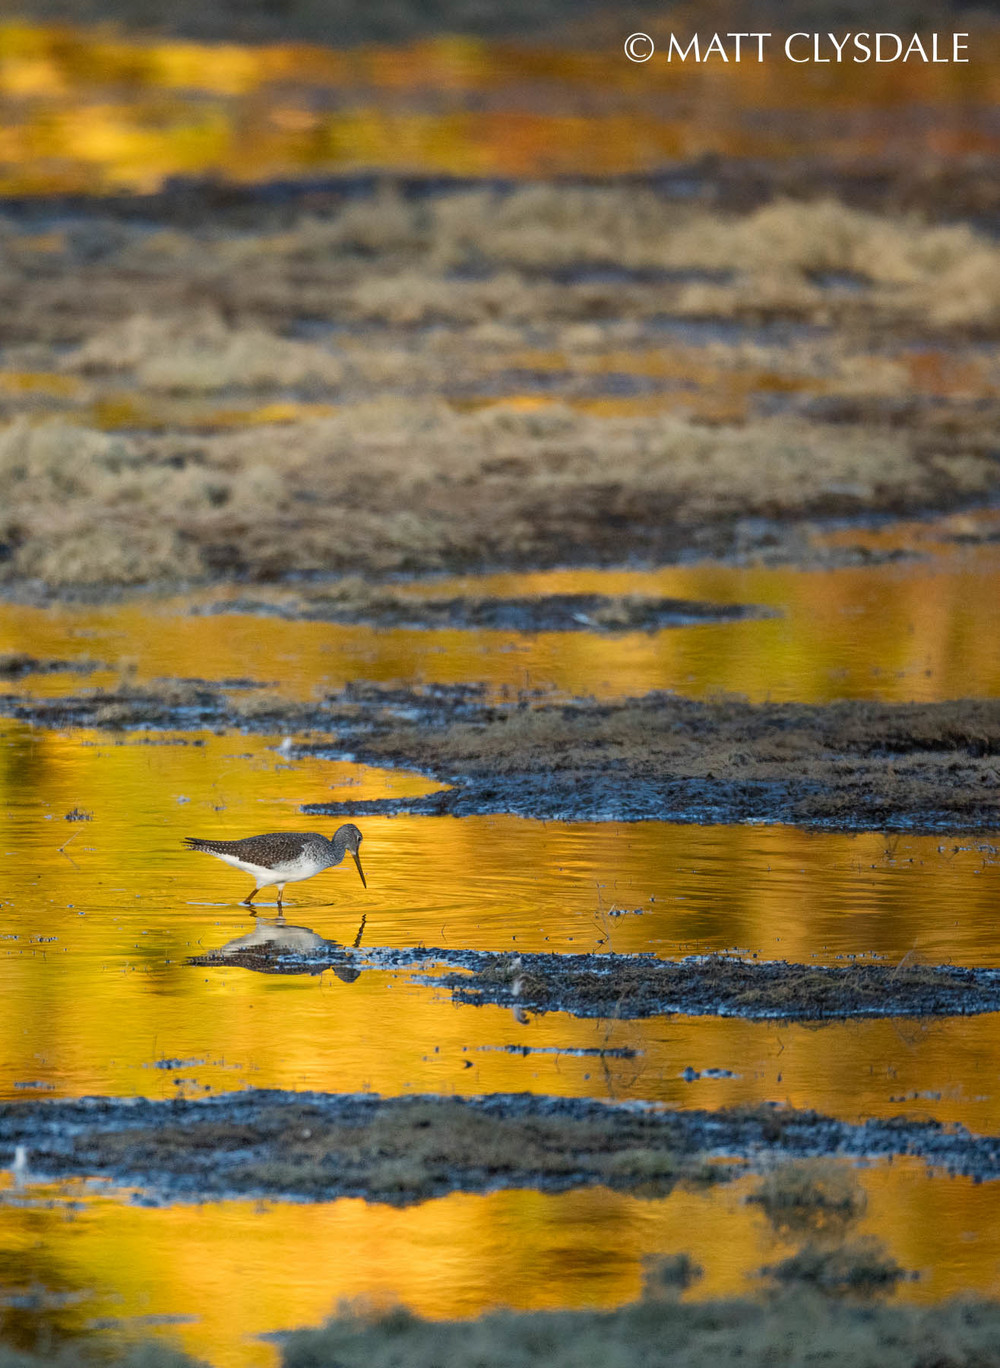 Greater Yellowlegs - Wolf Lake Fish Hatchery, Kalamazoo, MI